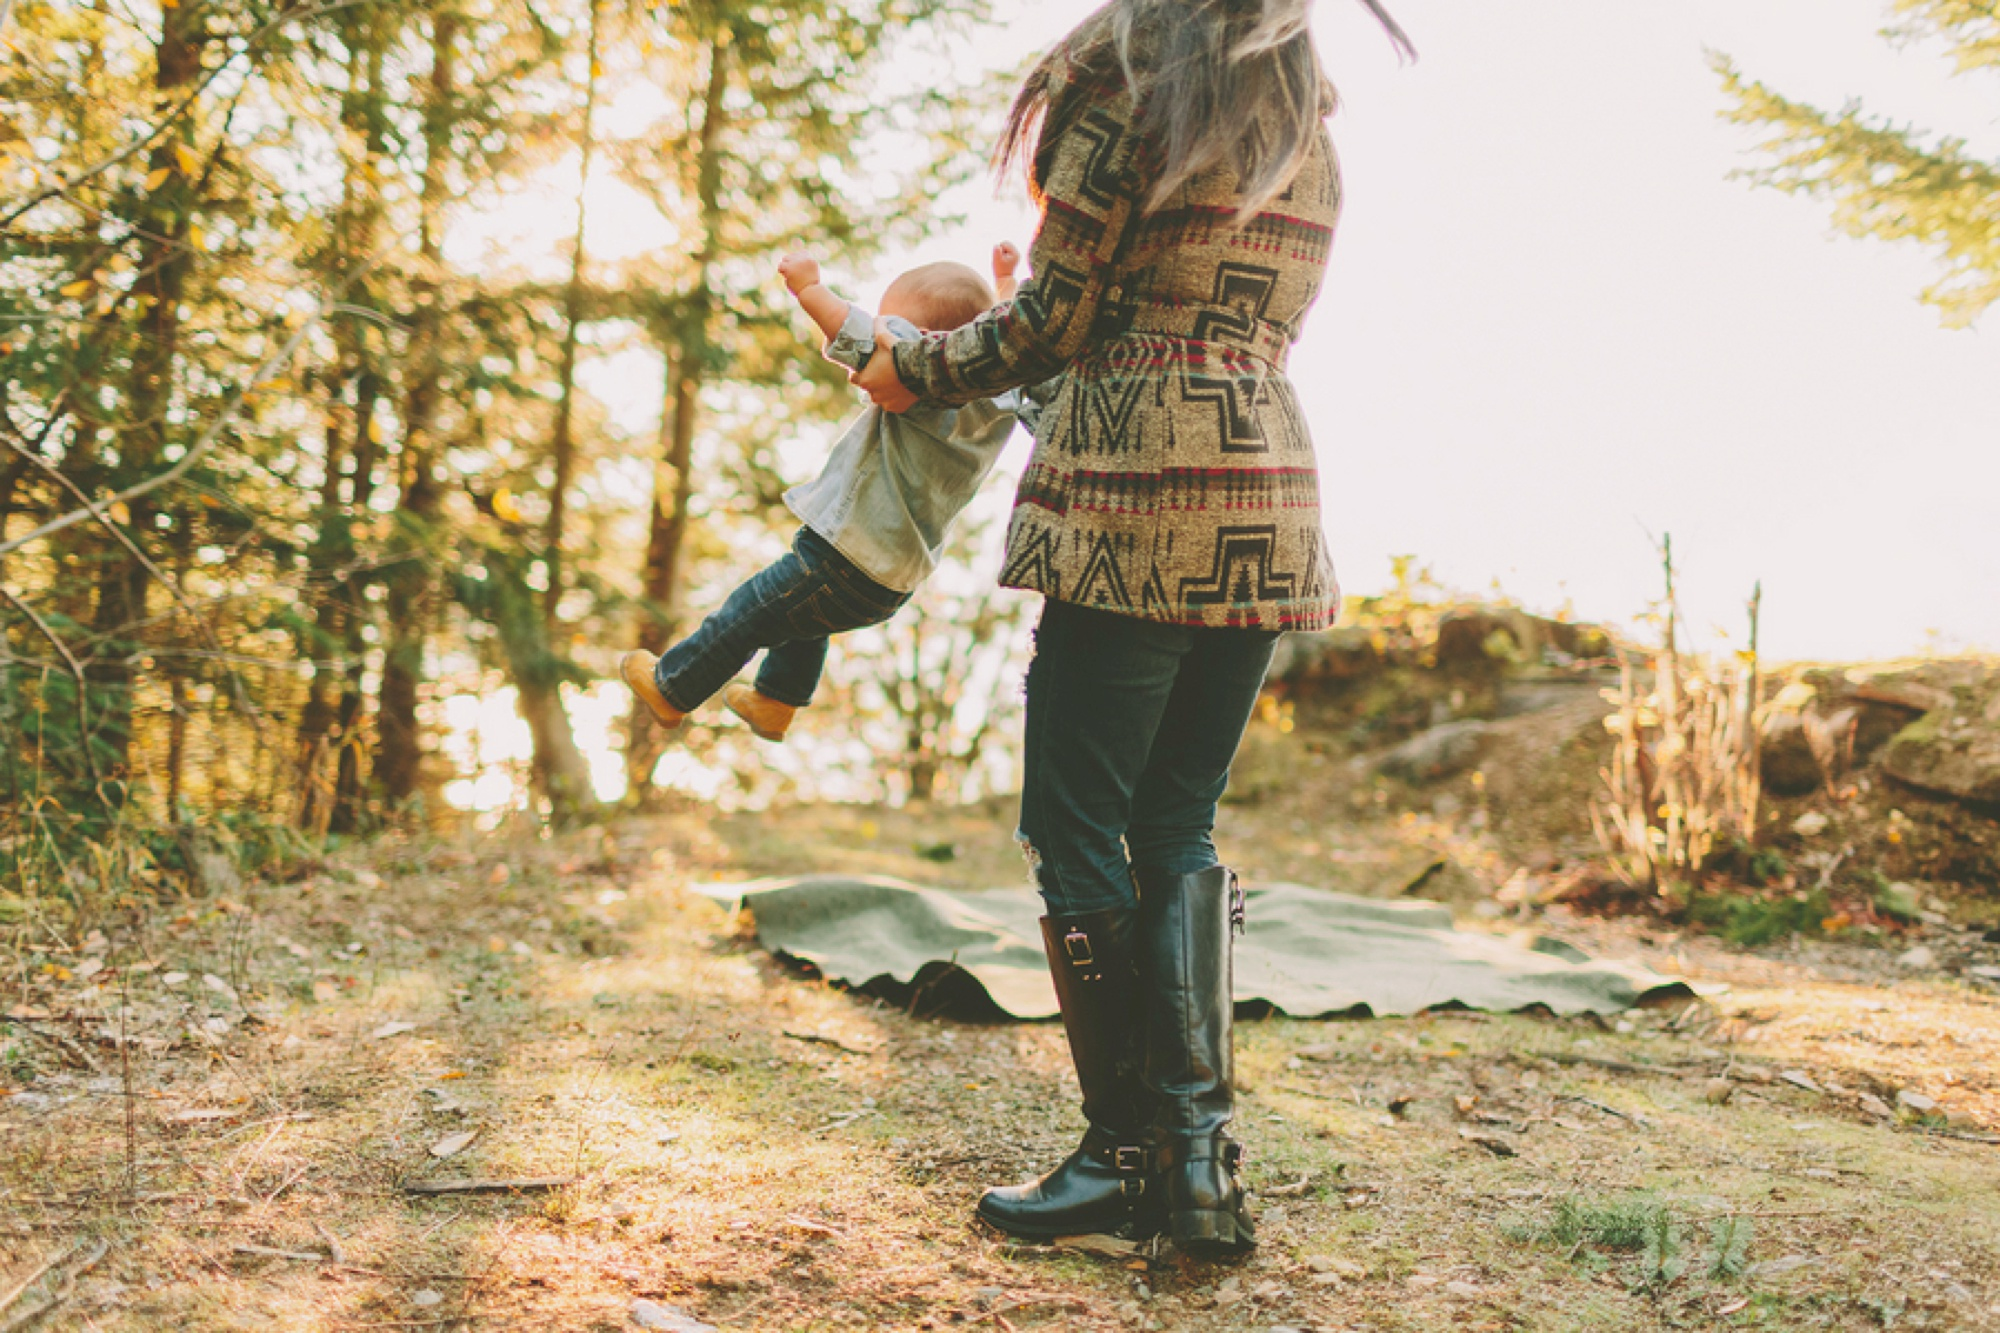 family of 3 picture ideas, camping family pictures, rustic family pictures, what to wear for family pictures, Rustic Mountain Top Family Session